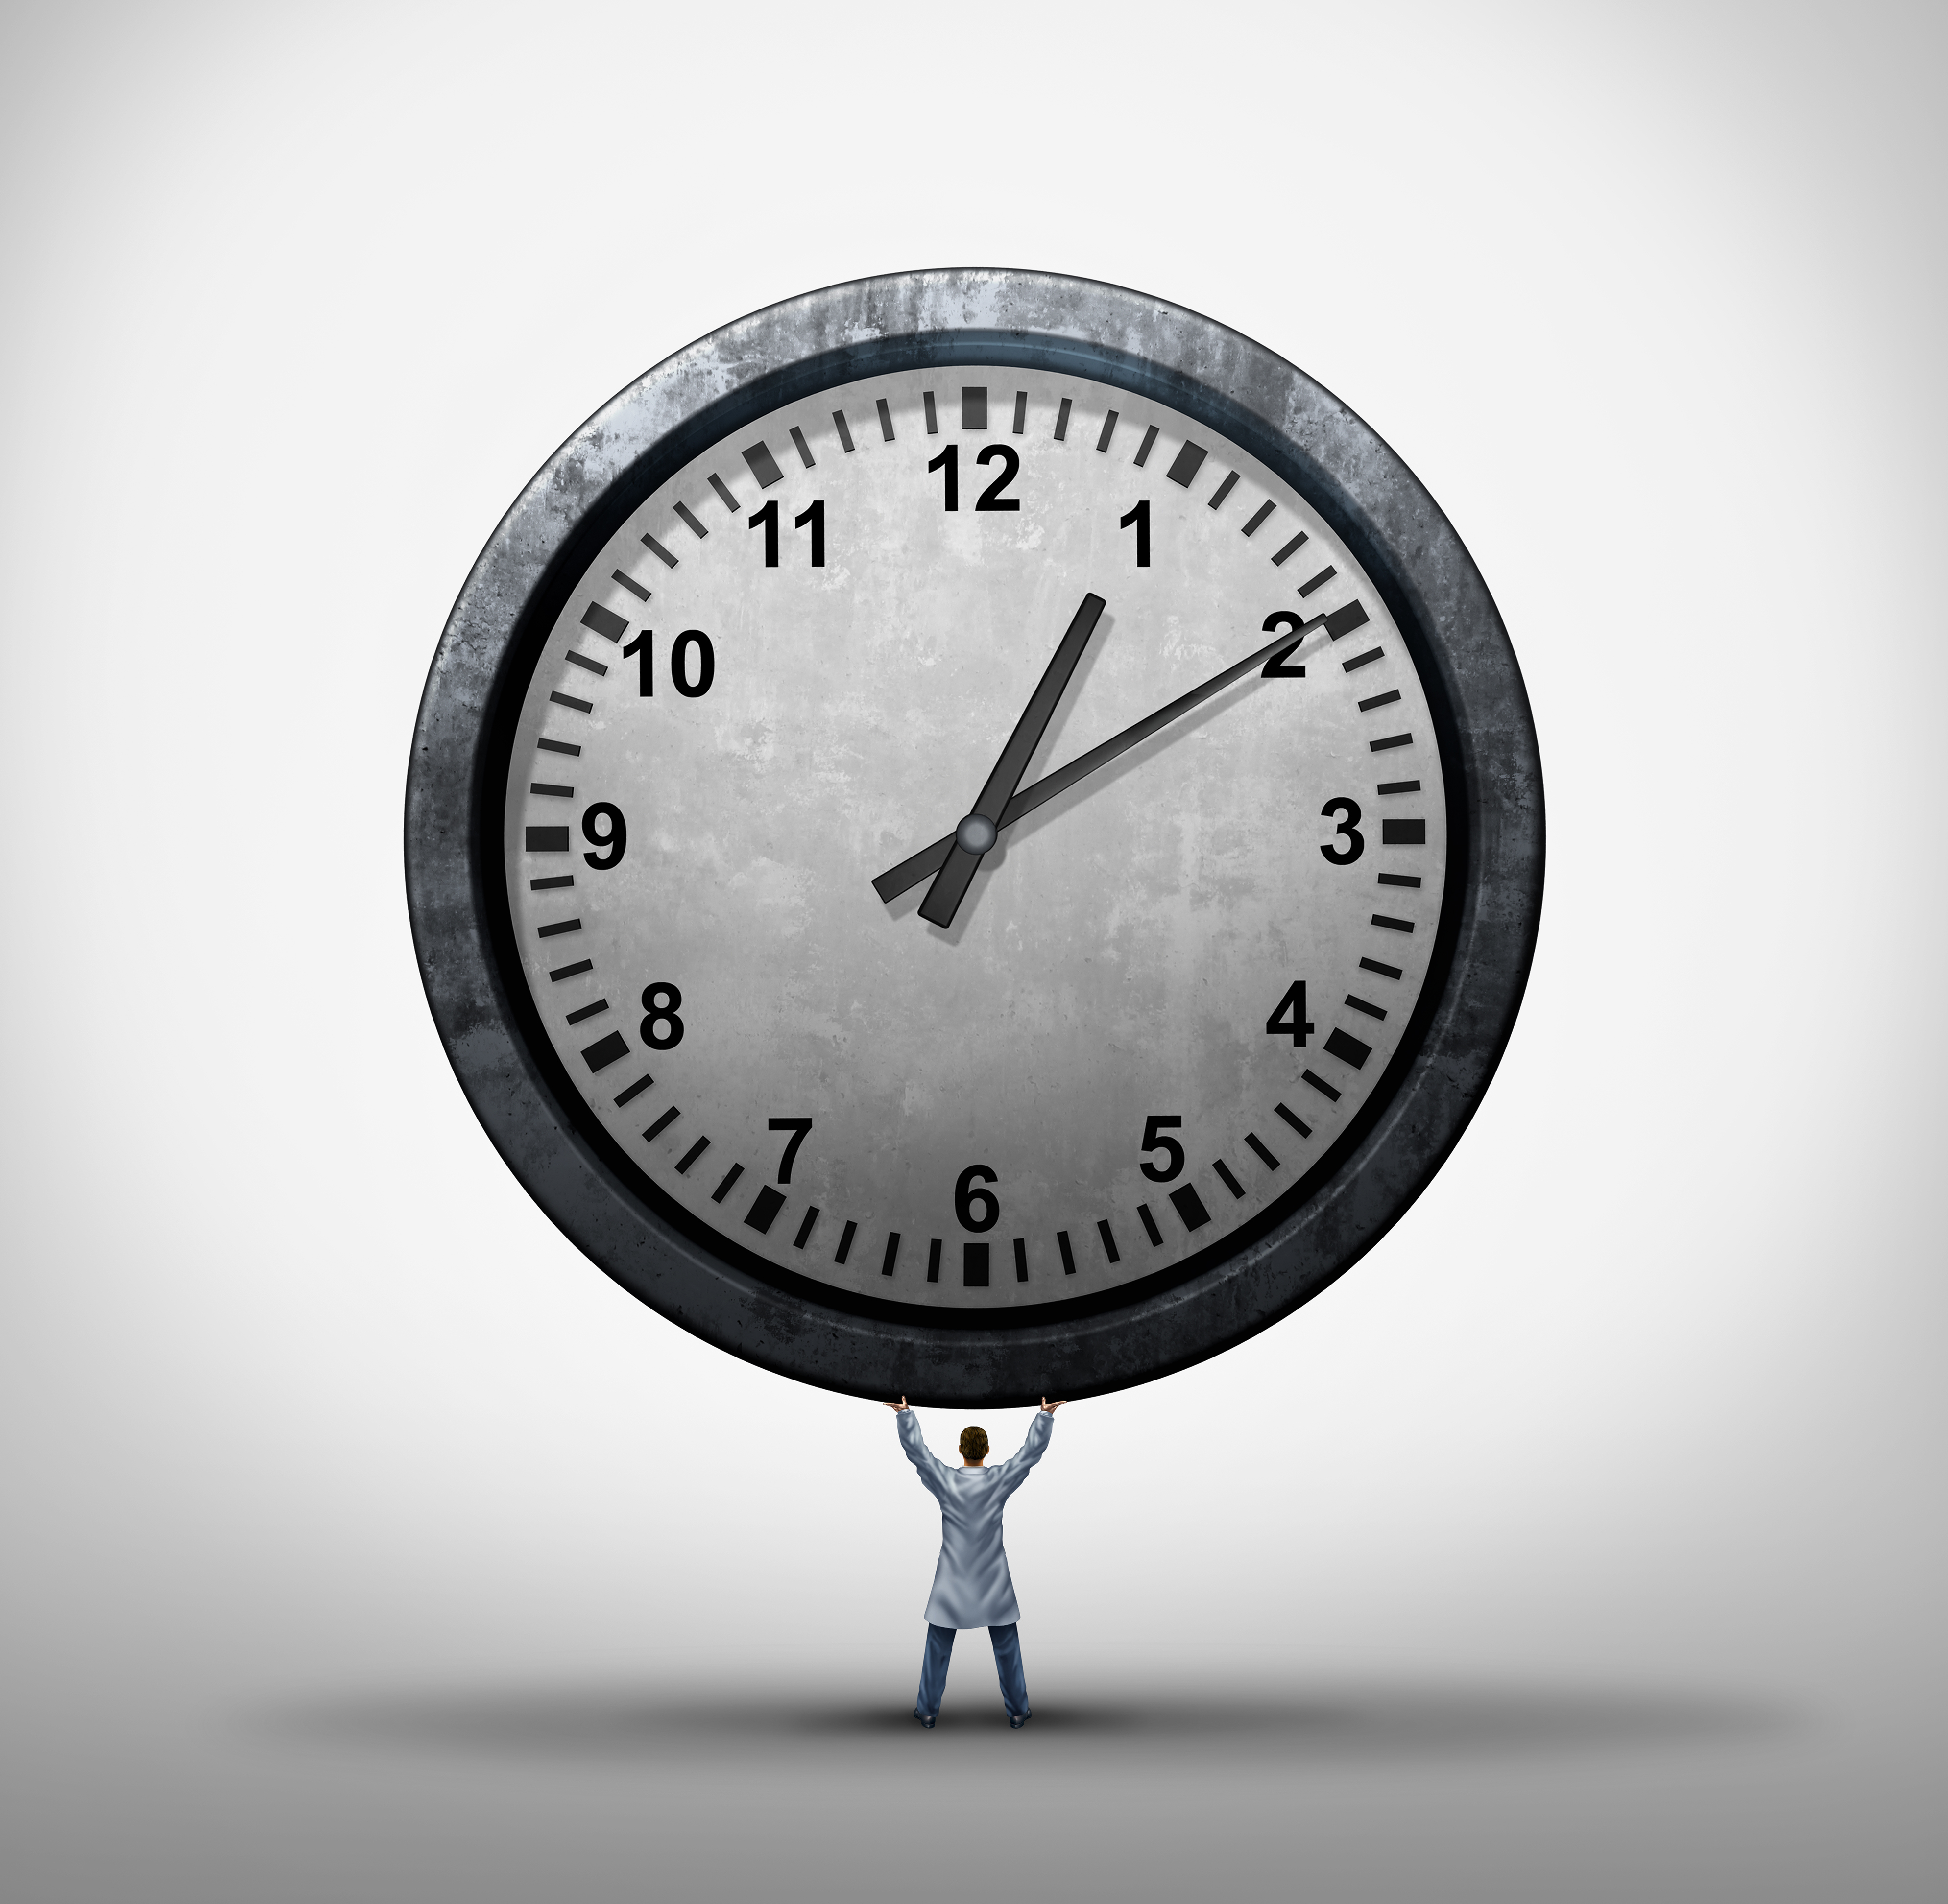 Valuing the Physician Hour - Converting Annual Compensation